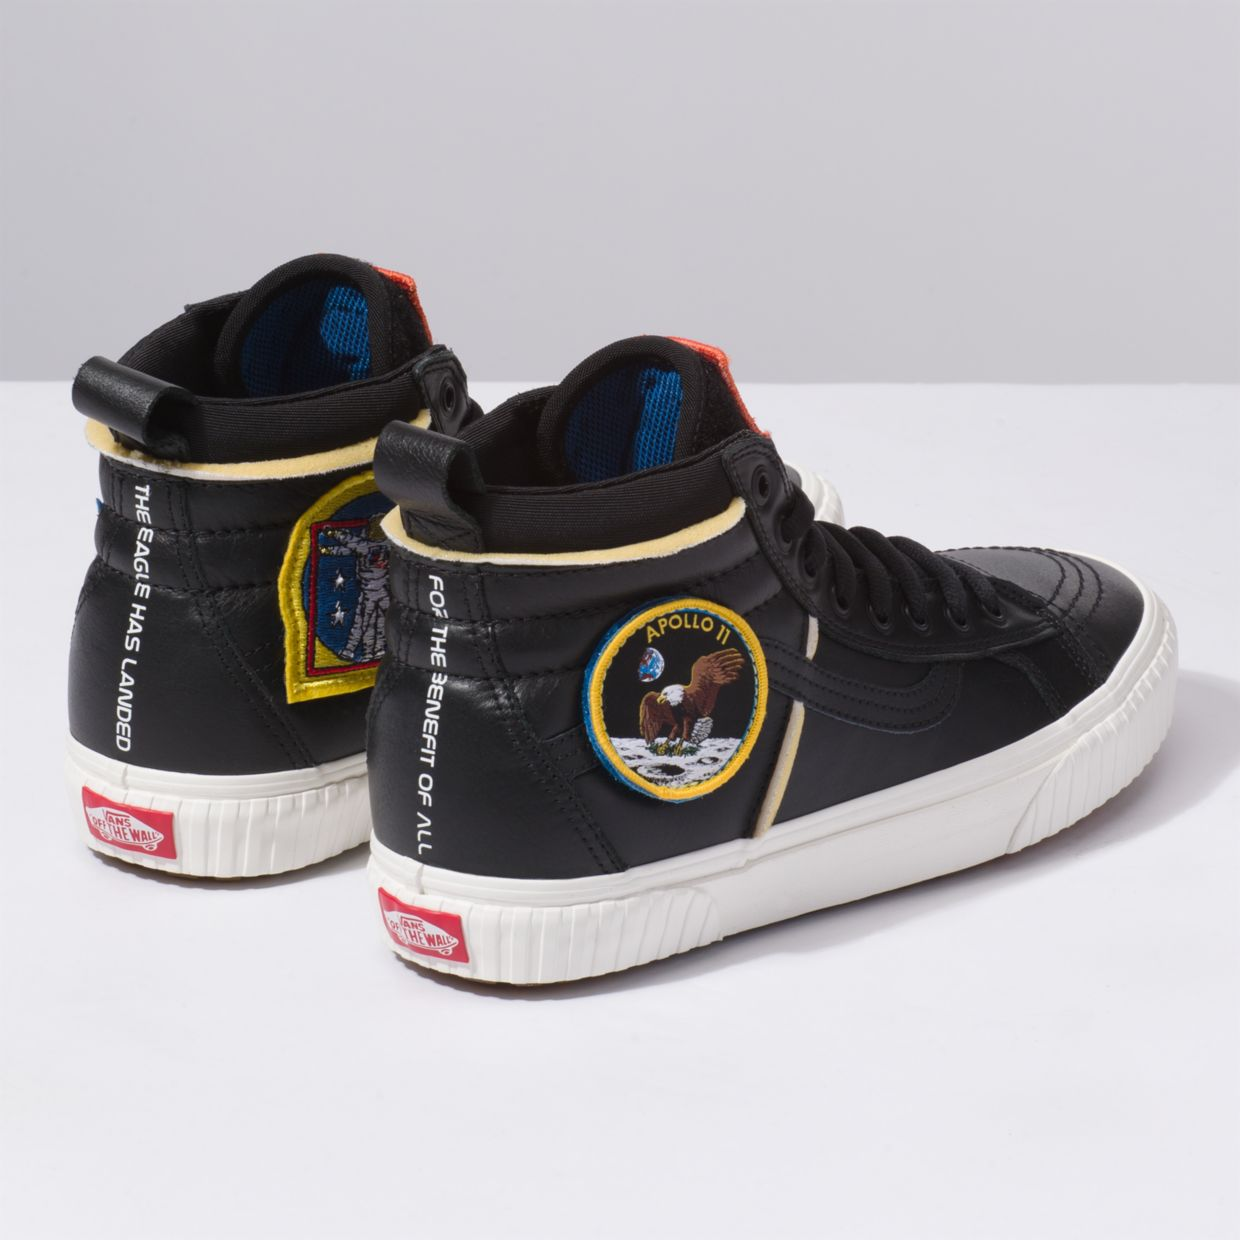 Attention space fans: The Vans x Space NASA collection is